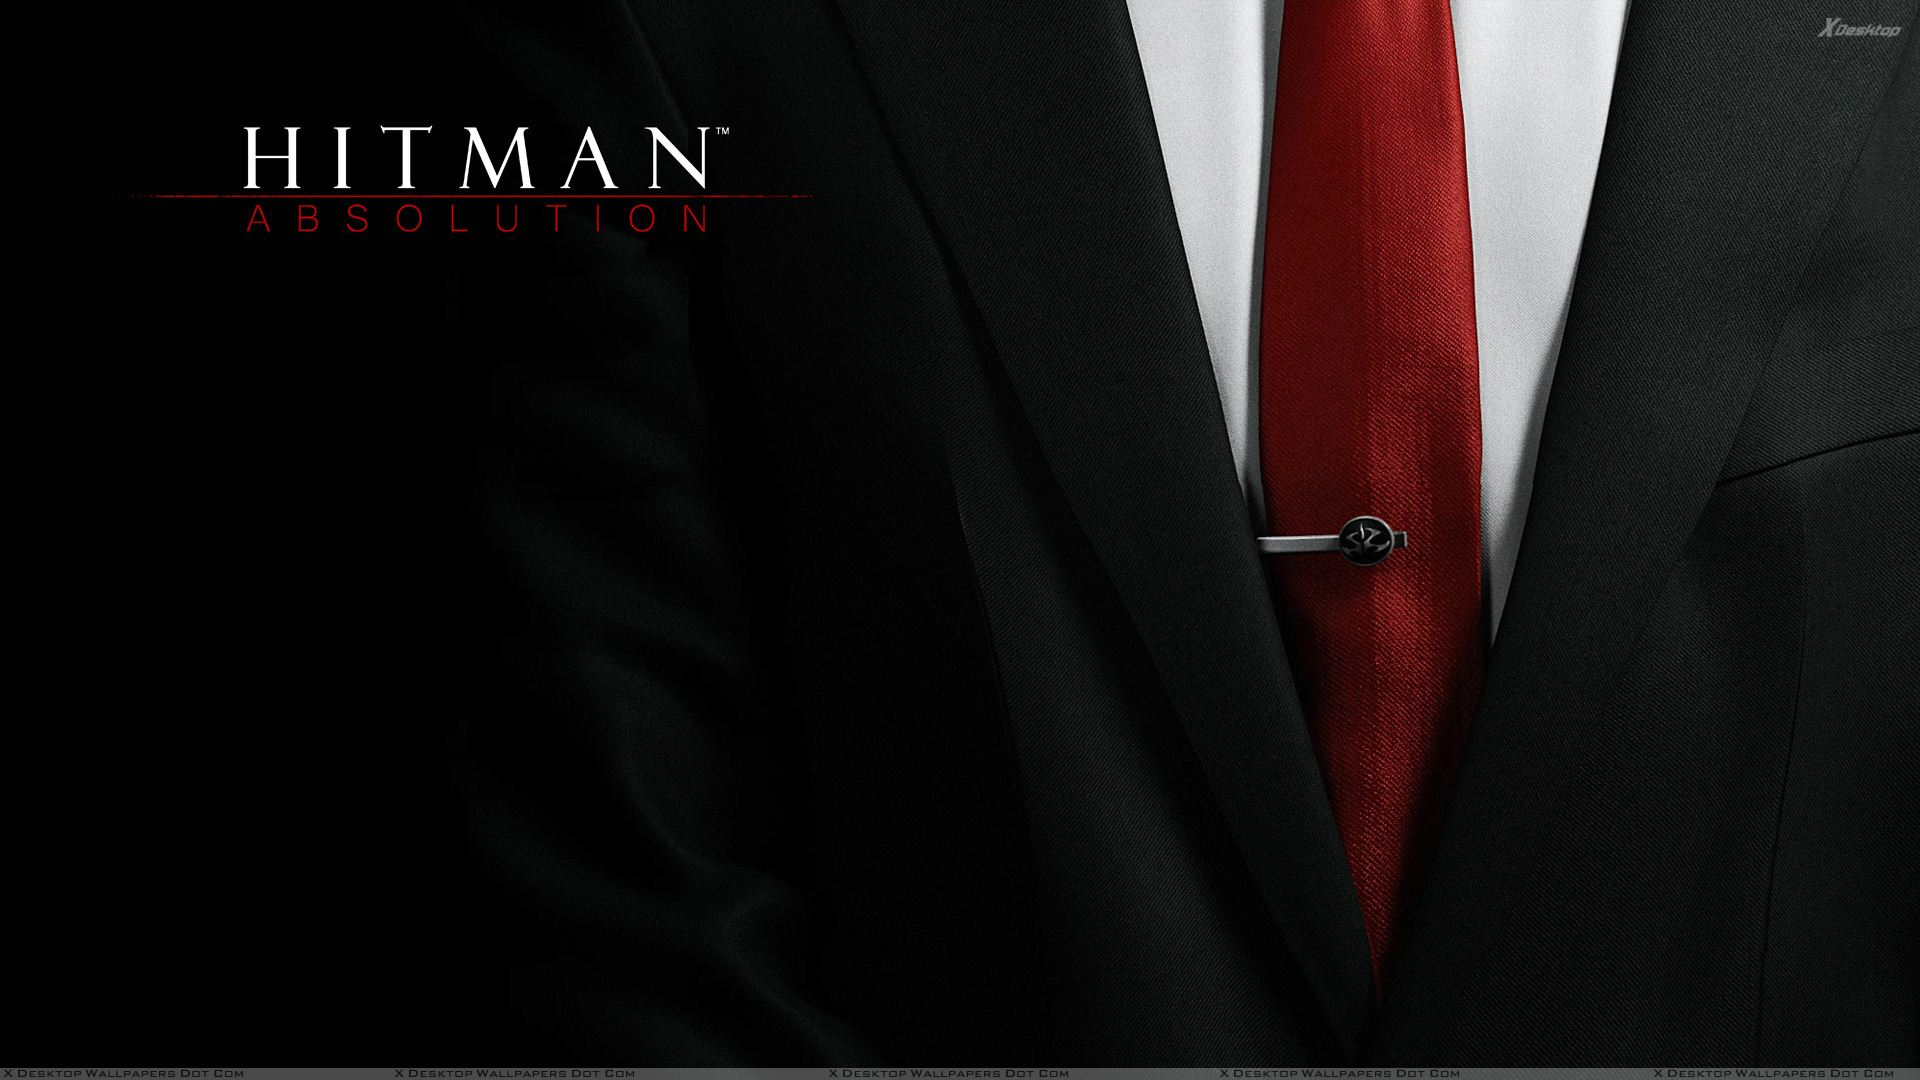 Hitman Absolution Wallpapers, Photos & Images in HD